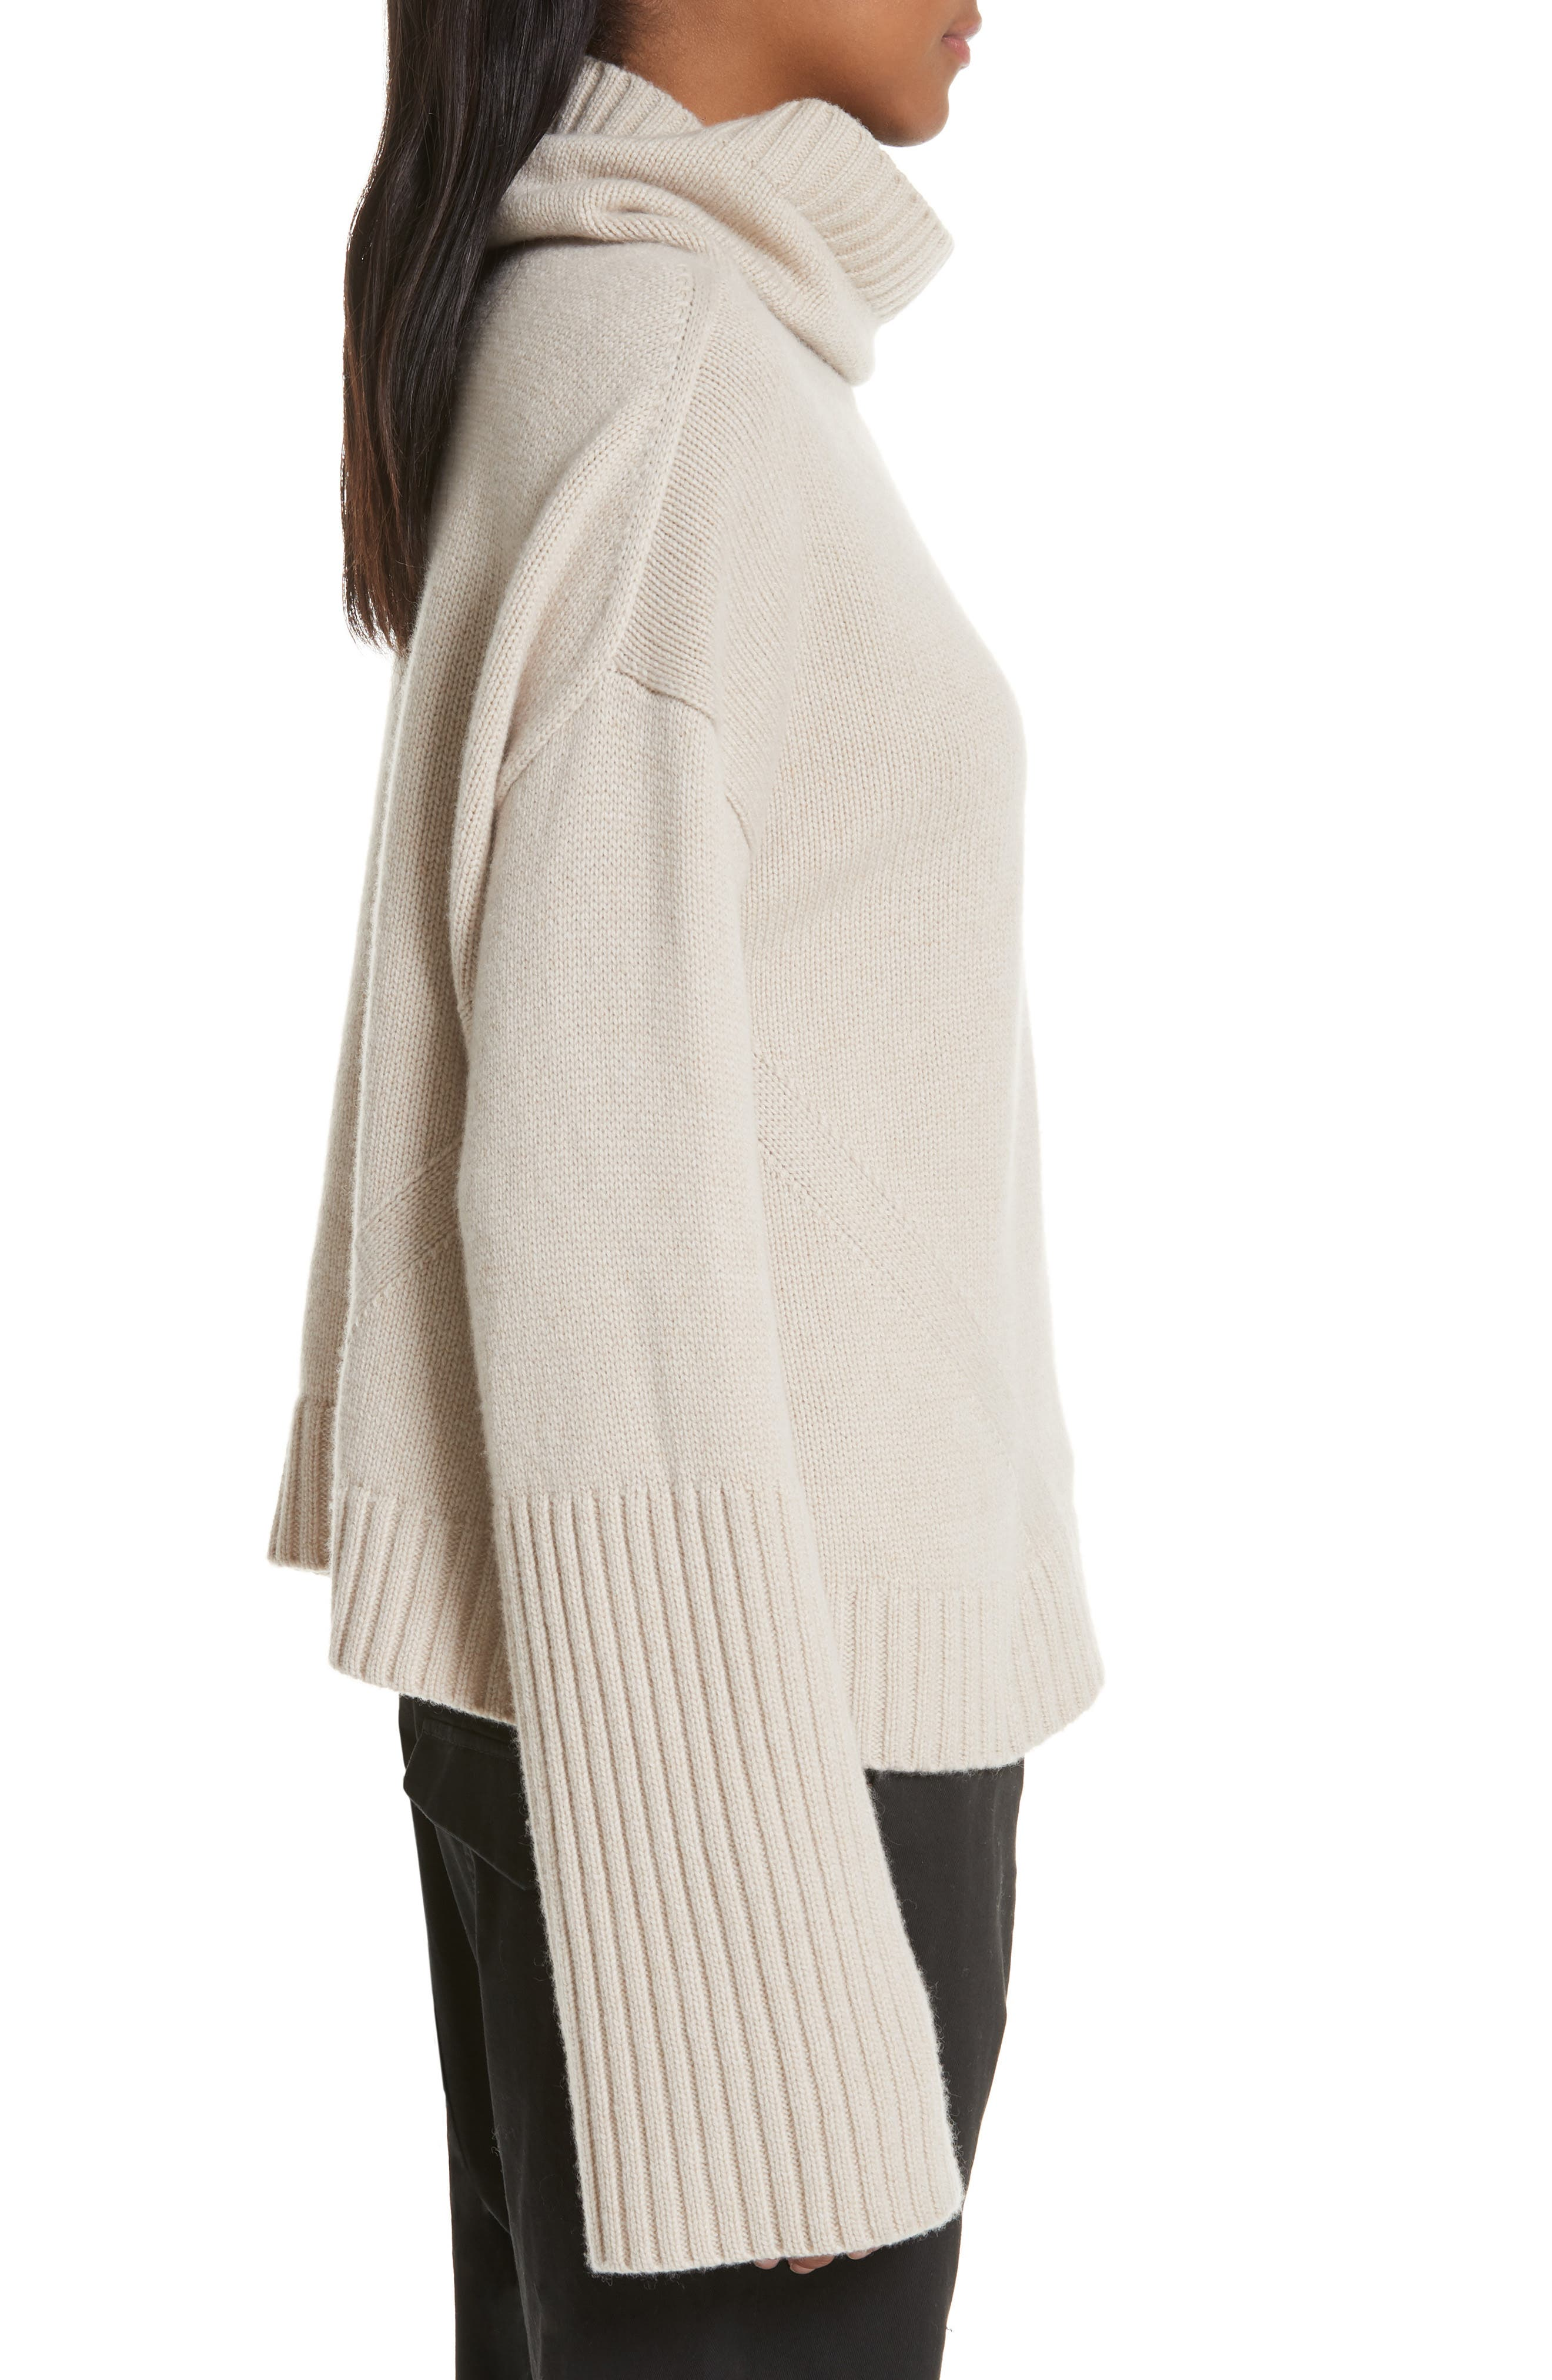 NILI LOTAN, Boyd Cashmere Cowl Neck Sweater, Alternate thumbnail 3, color, LIGHT TAUPE